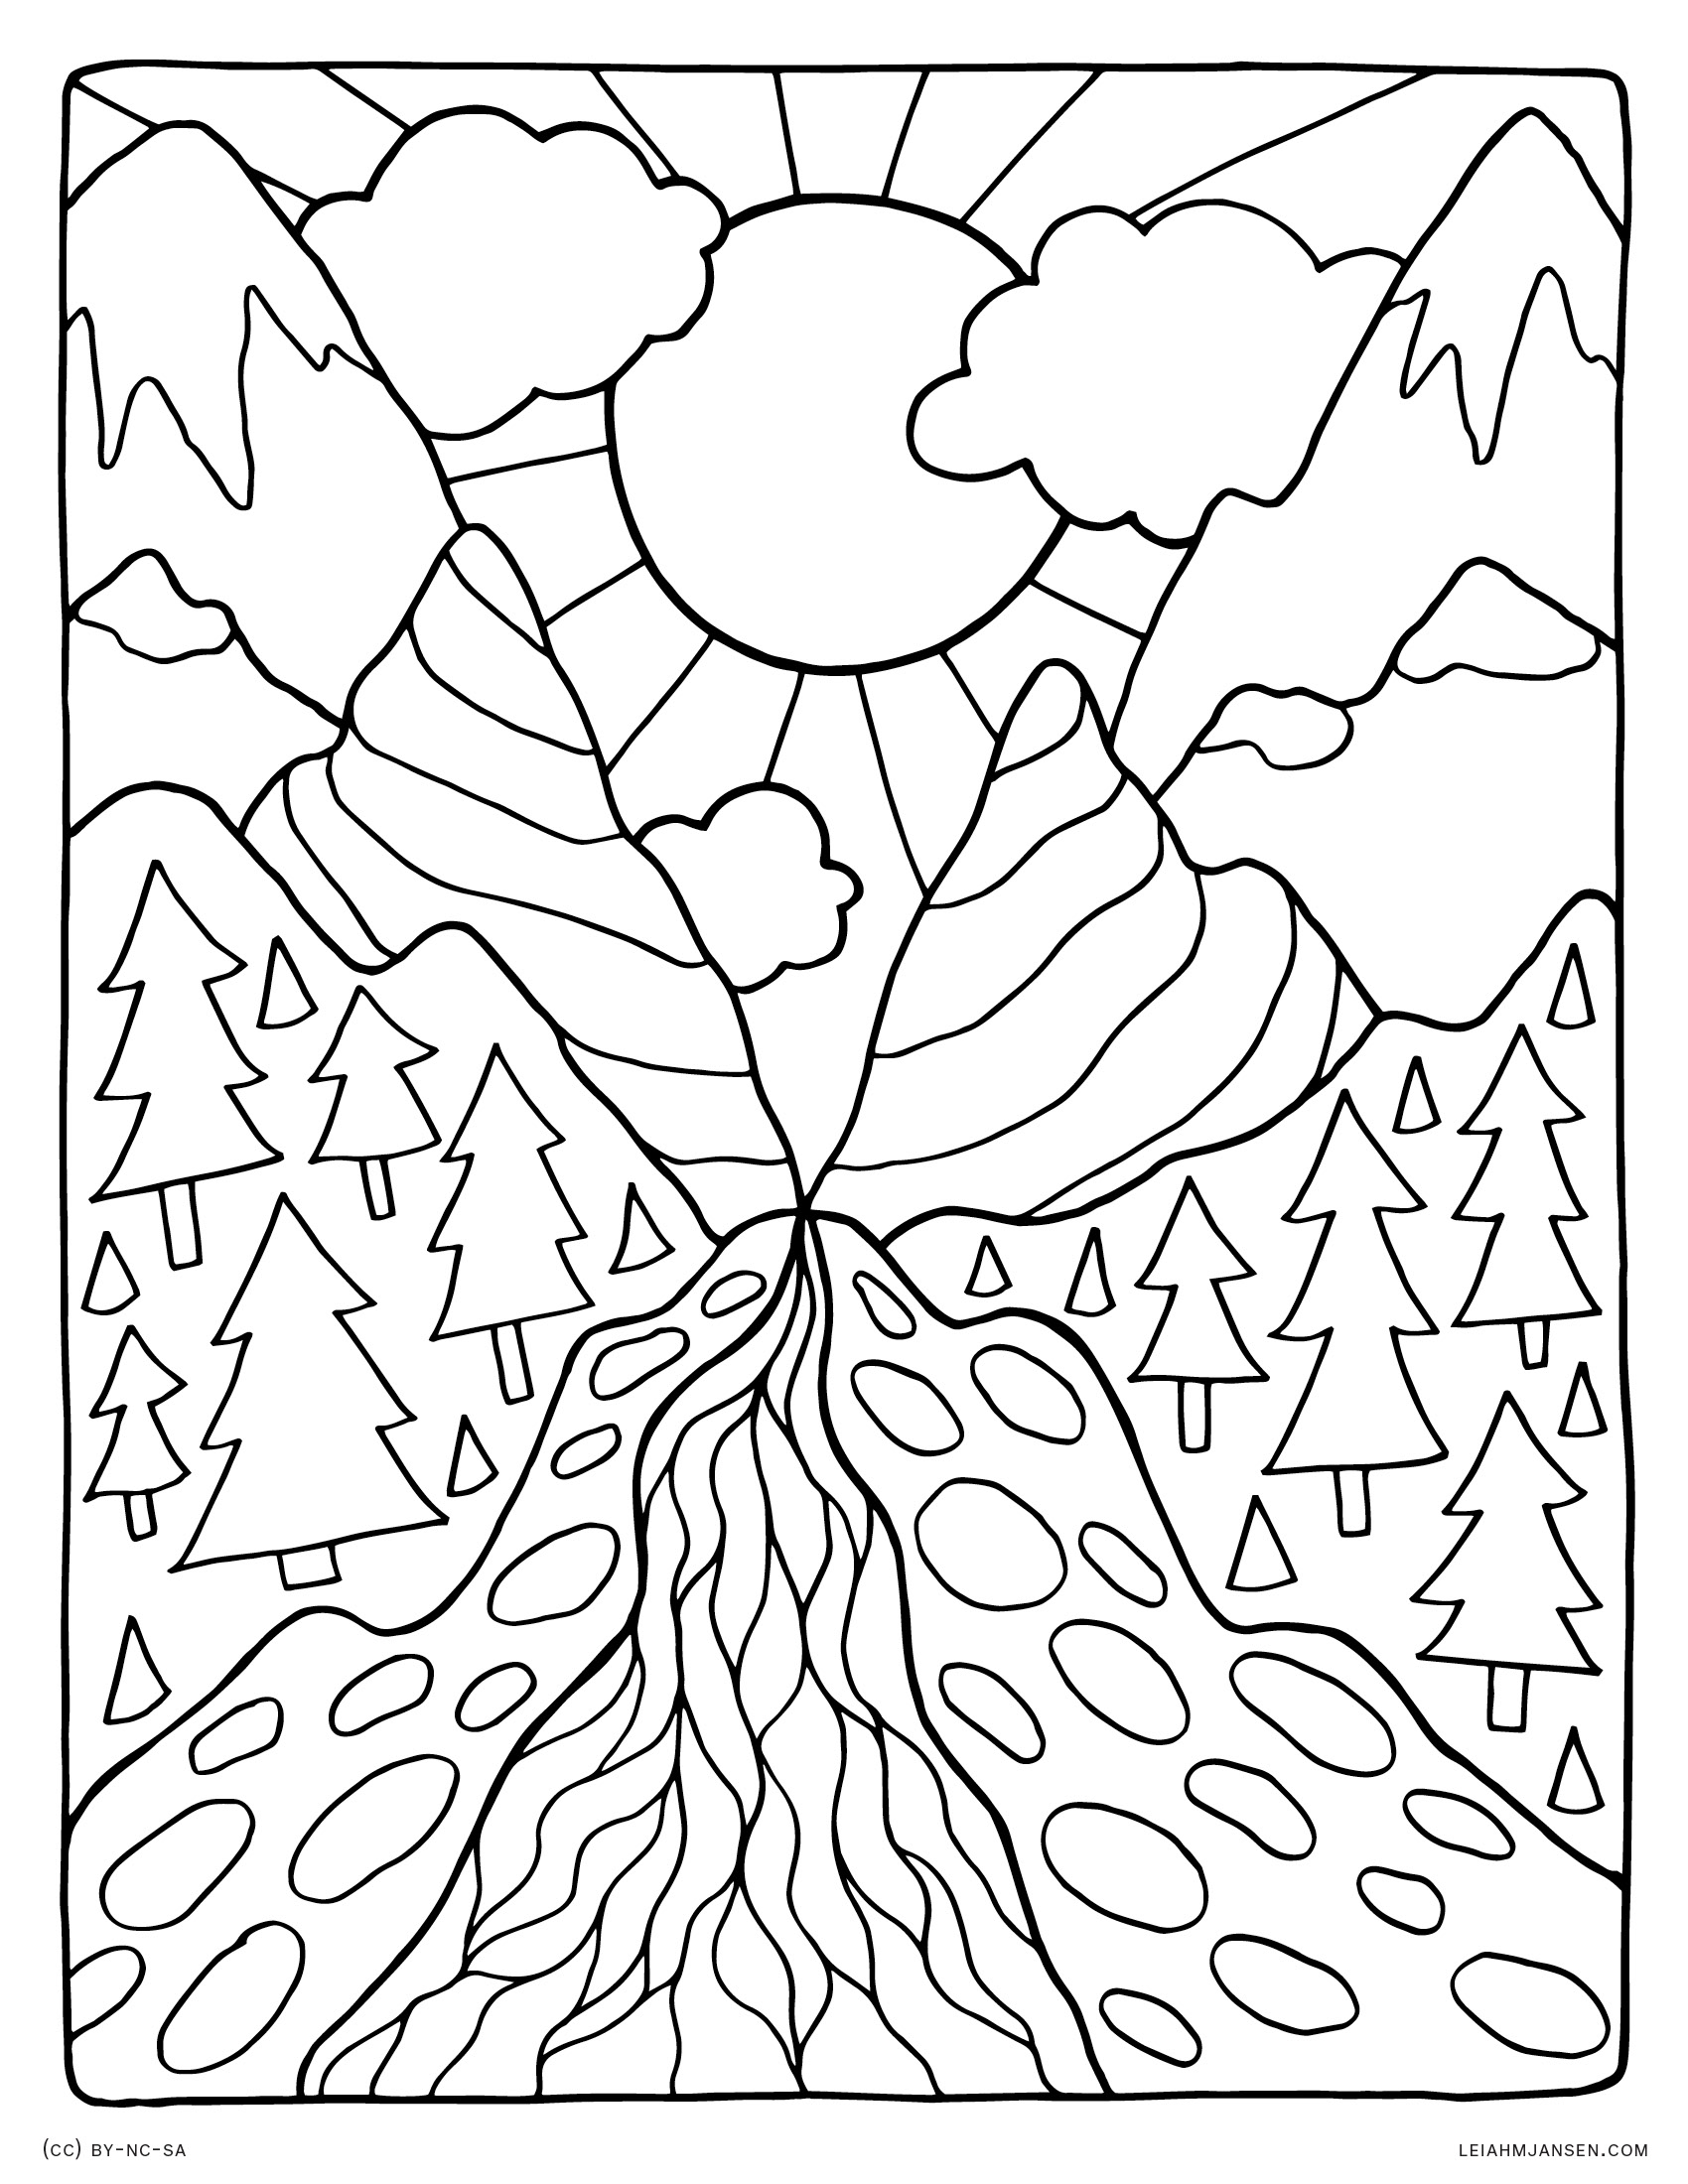 Free Coloring Pages Landscapes Printables At Getdrawings